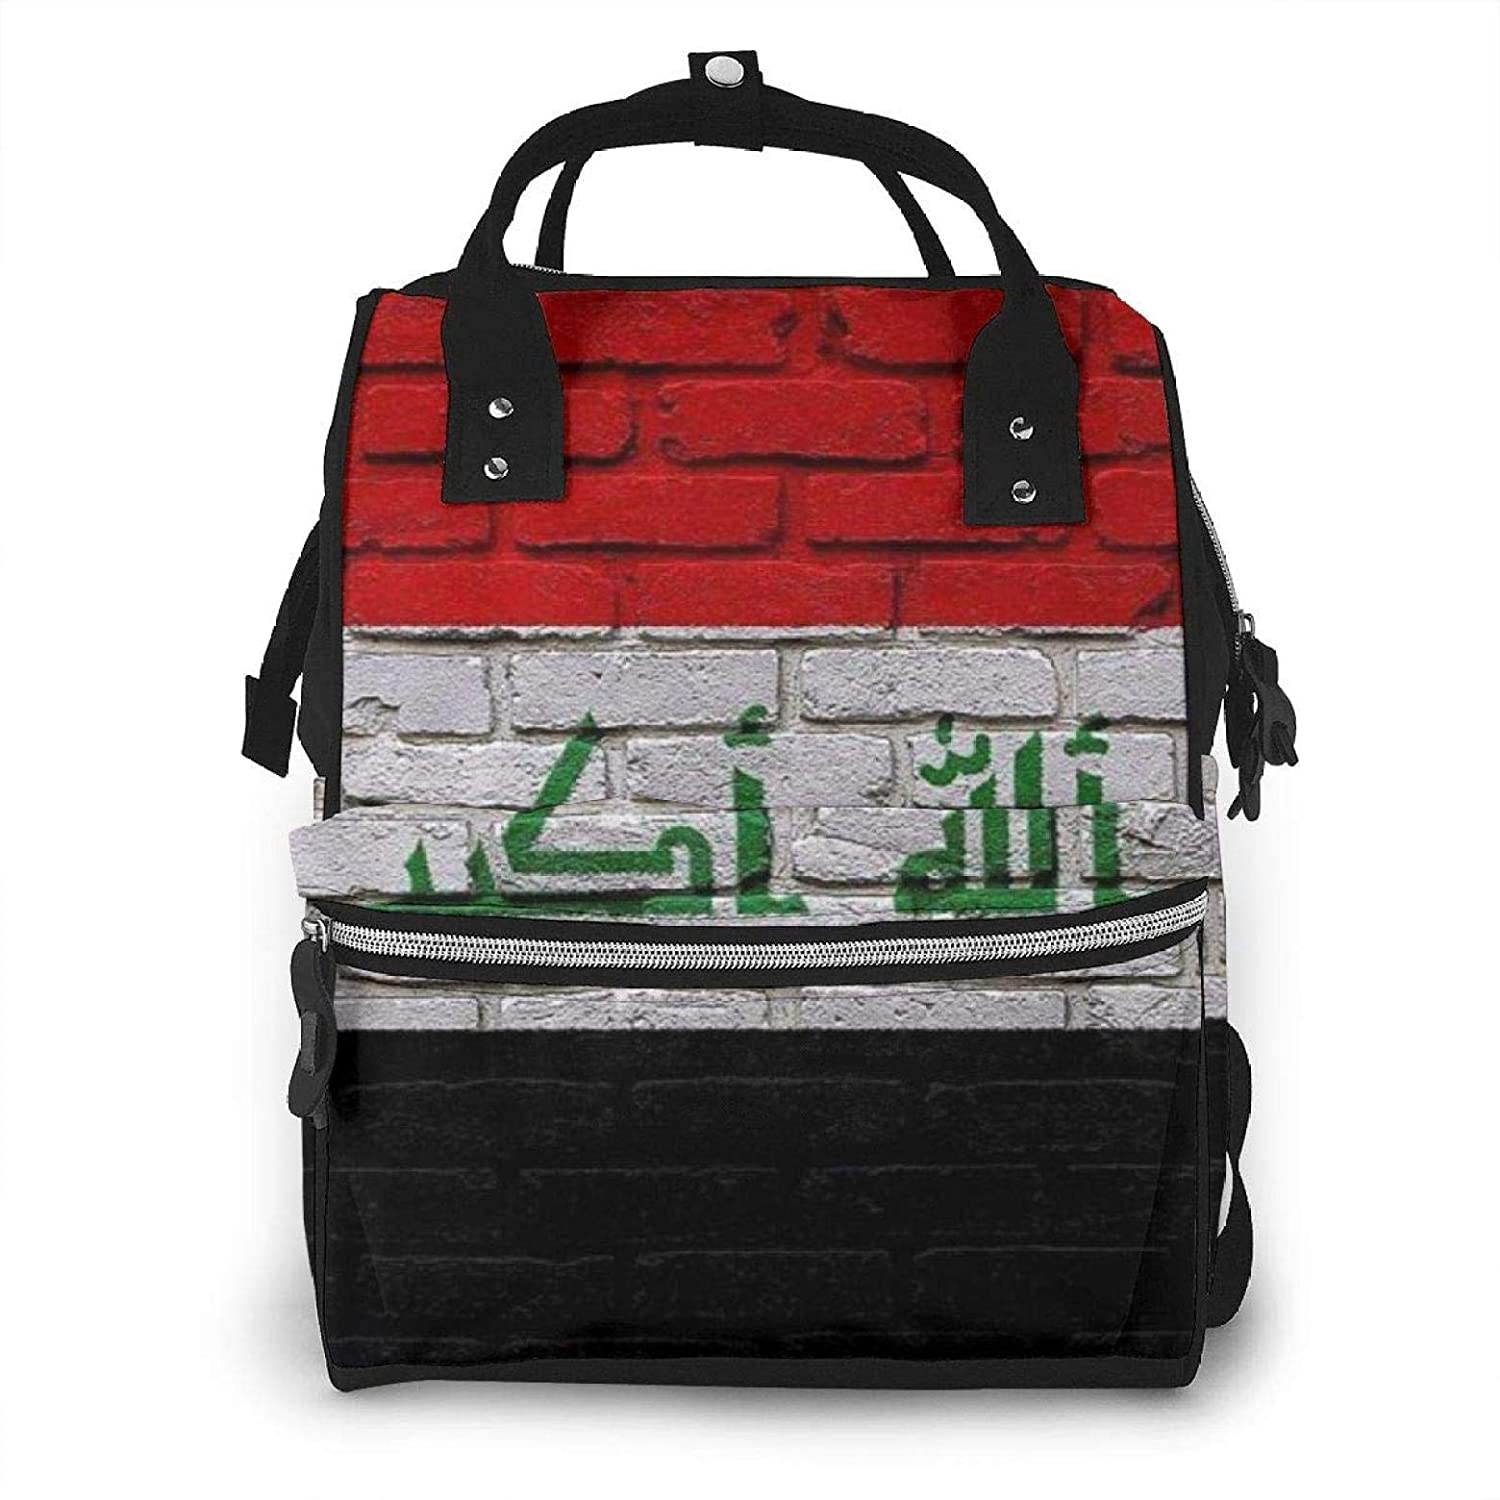 Flag of Iraq (Iraqi) - RusticUSA License Plate Baby Diaper Bag Nappy Backpack Travel Shoulder Bag Large Capacity for Mommy Daddy